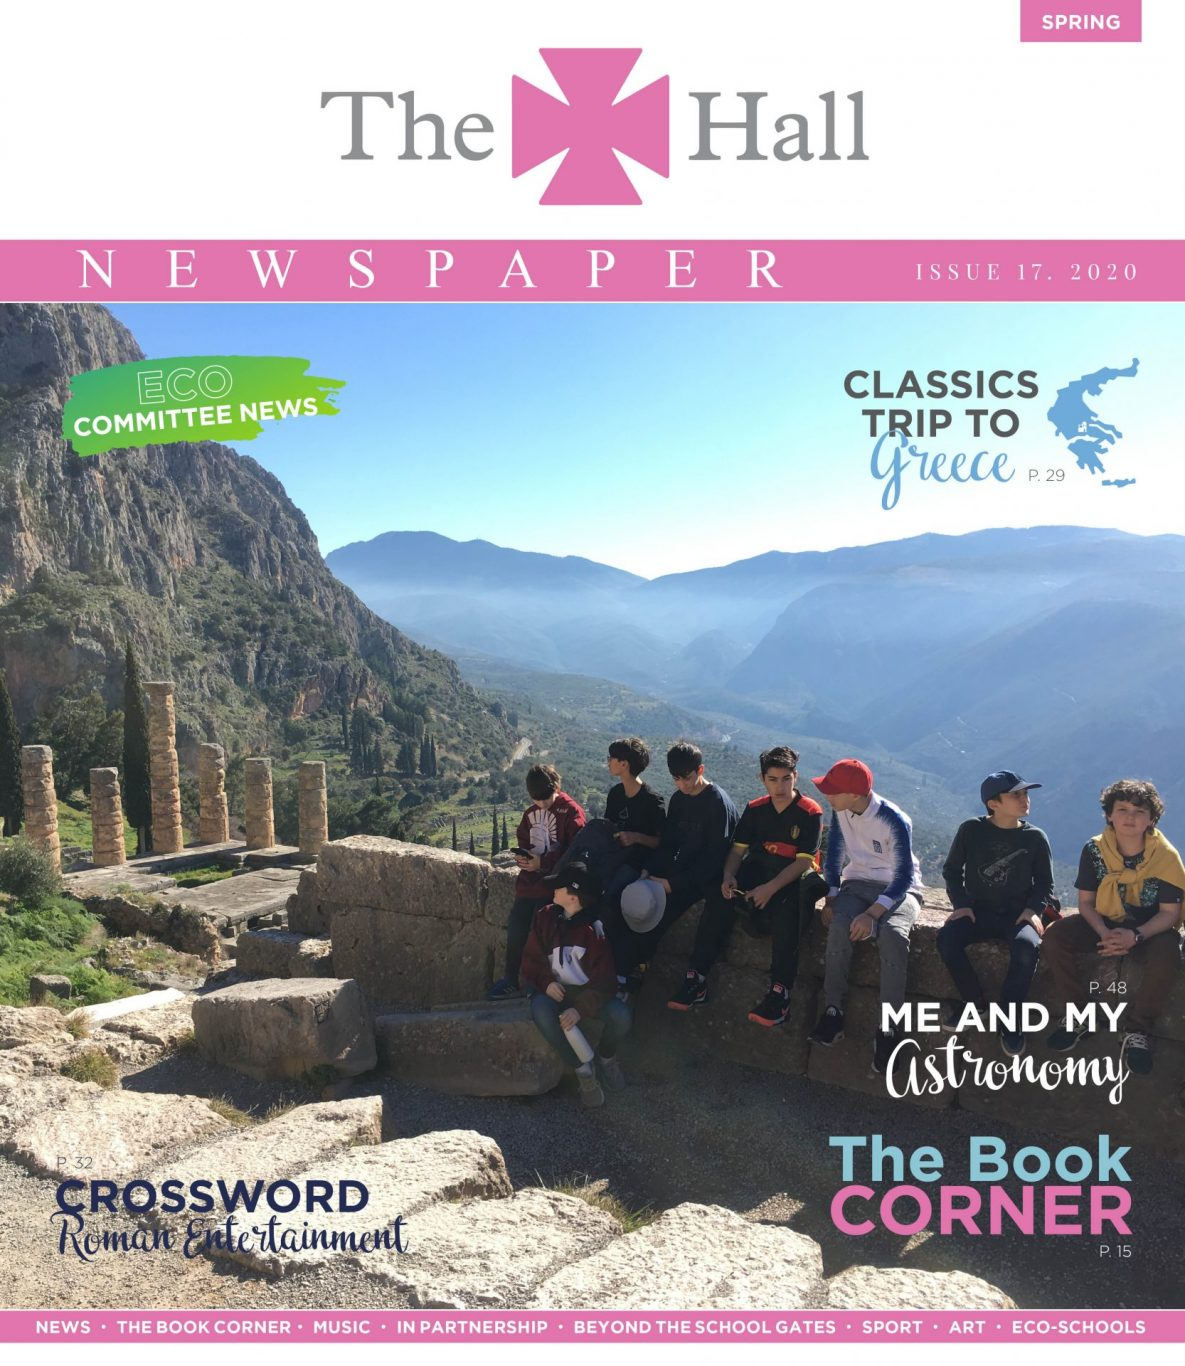 The Hall Newspaper Spring 2020 No 17 Cover